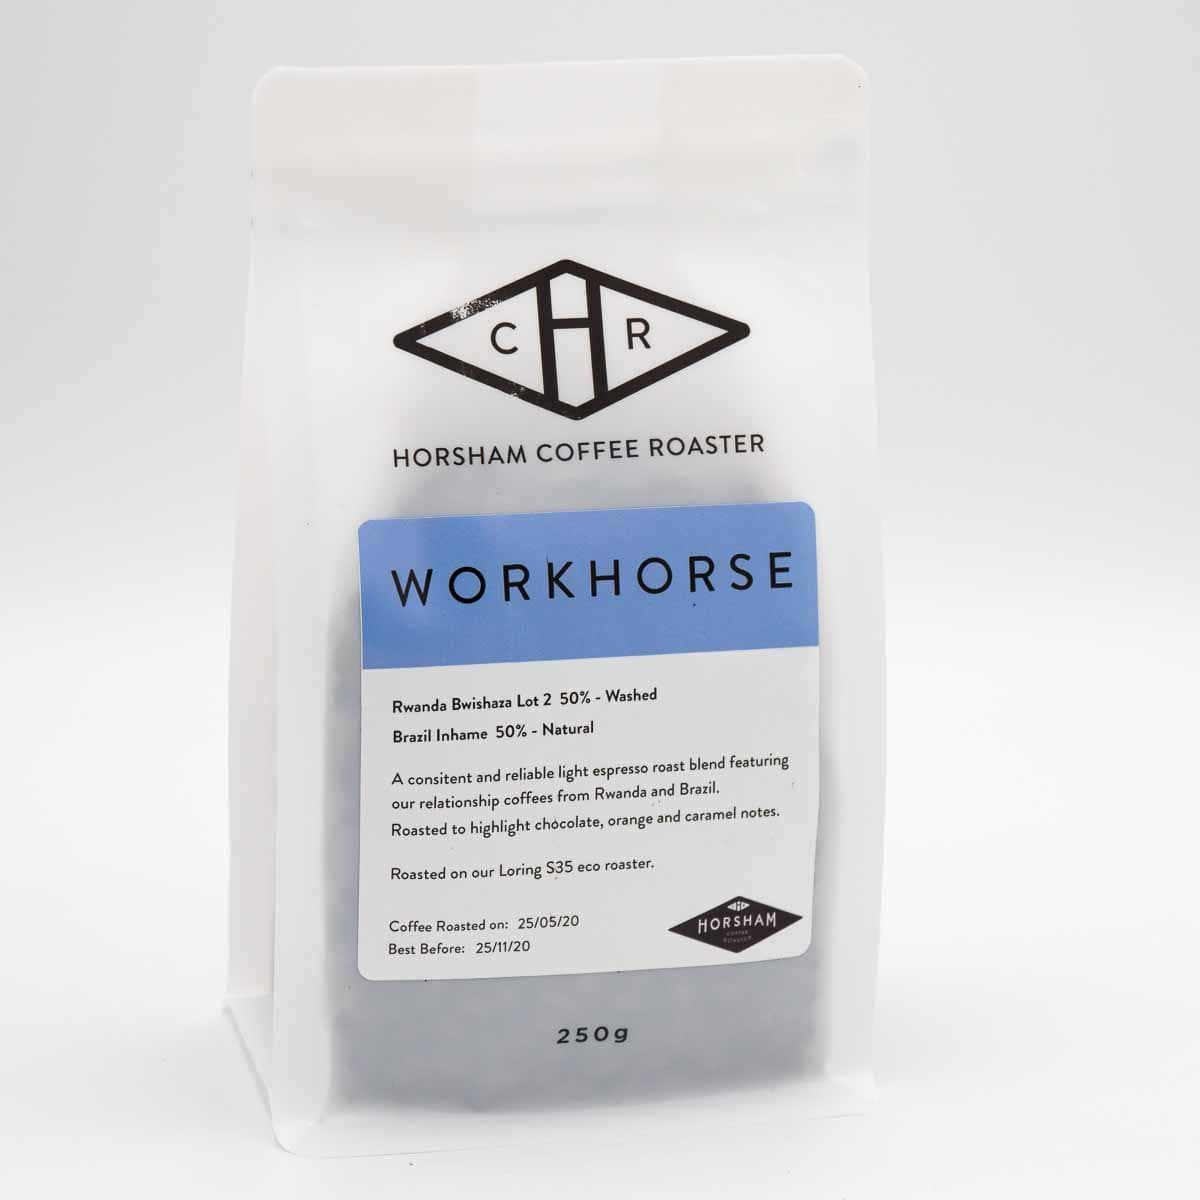 Workhorse - Horsham Coffee Roaster